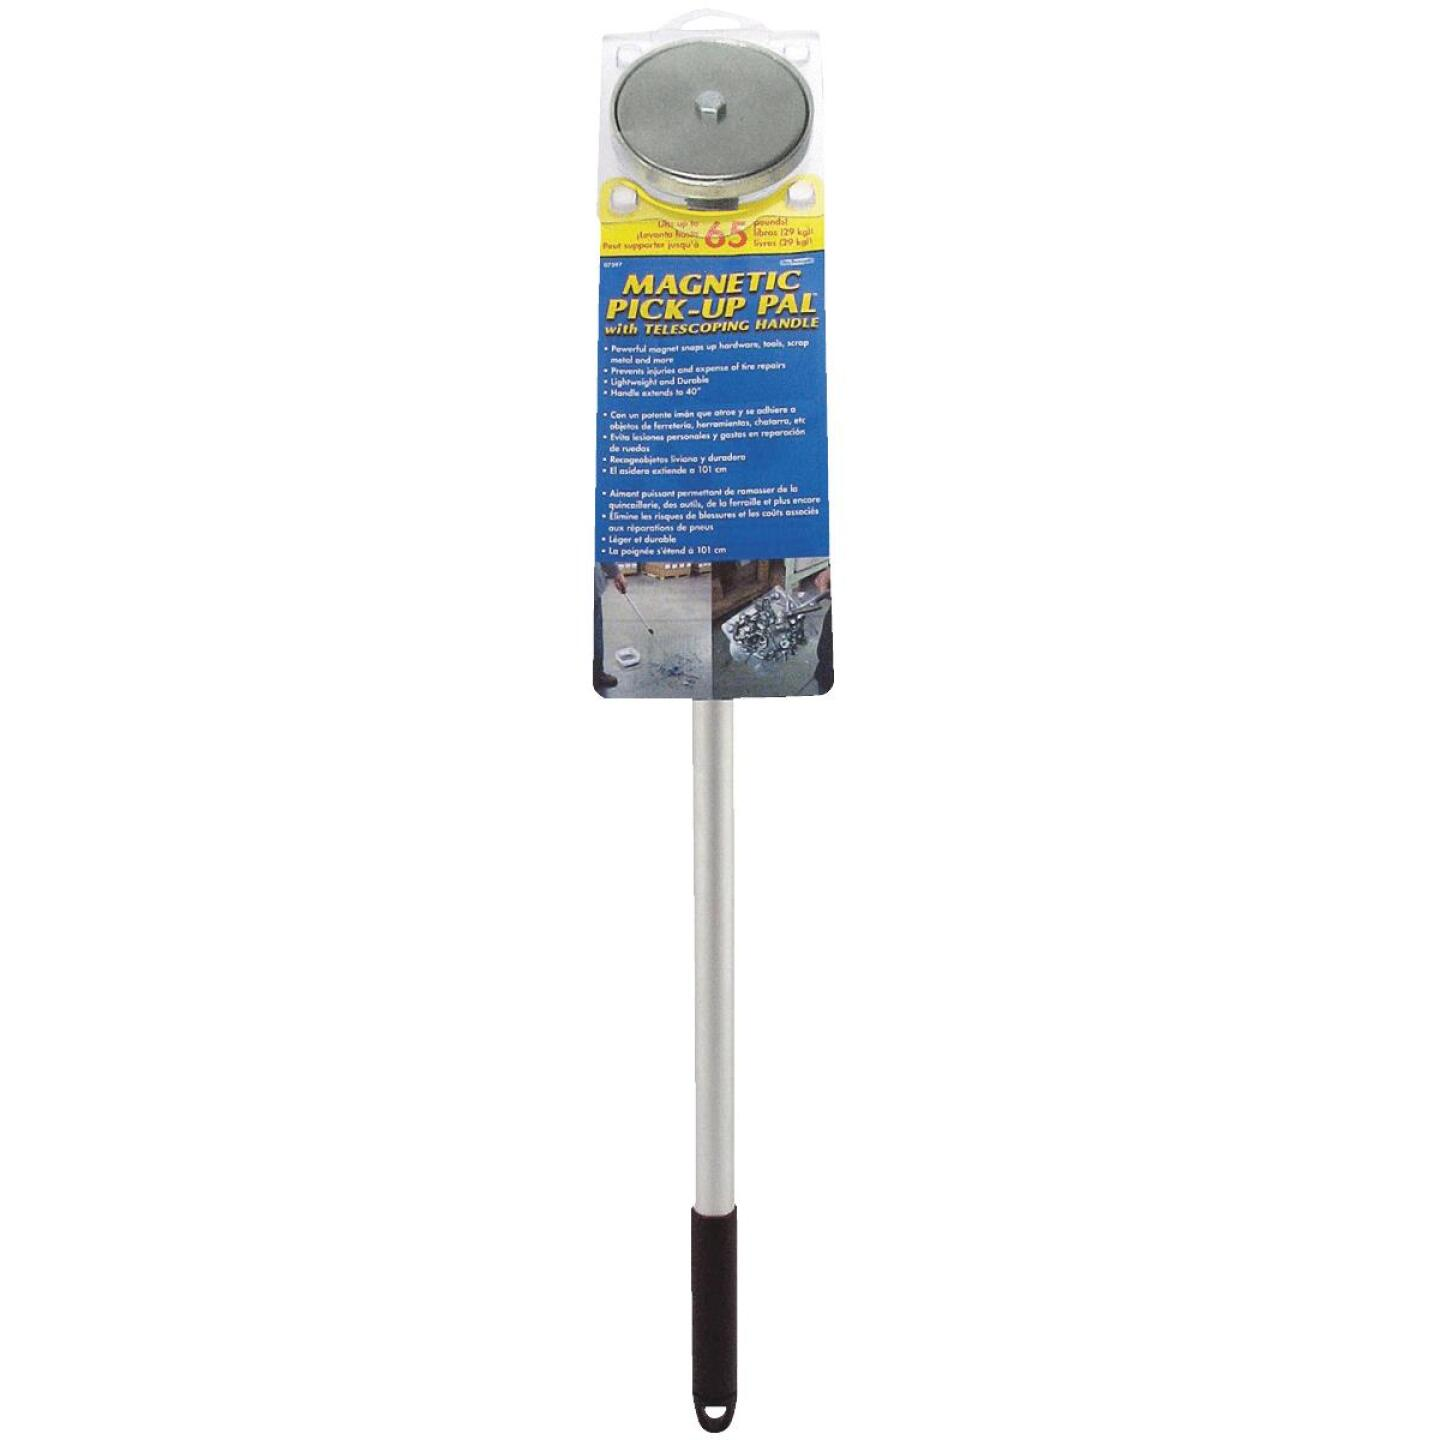 Master Magnetics 40 in. 65 Lb. Magnetic Pick-Up Tool Image 2